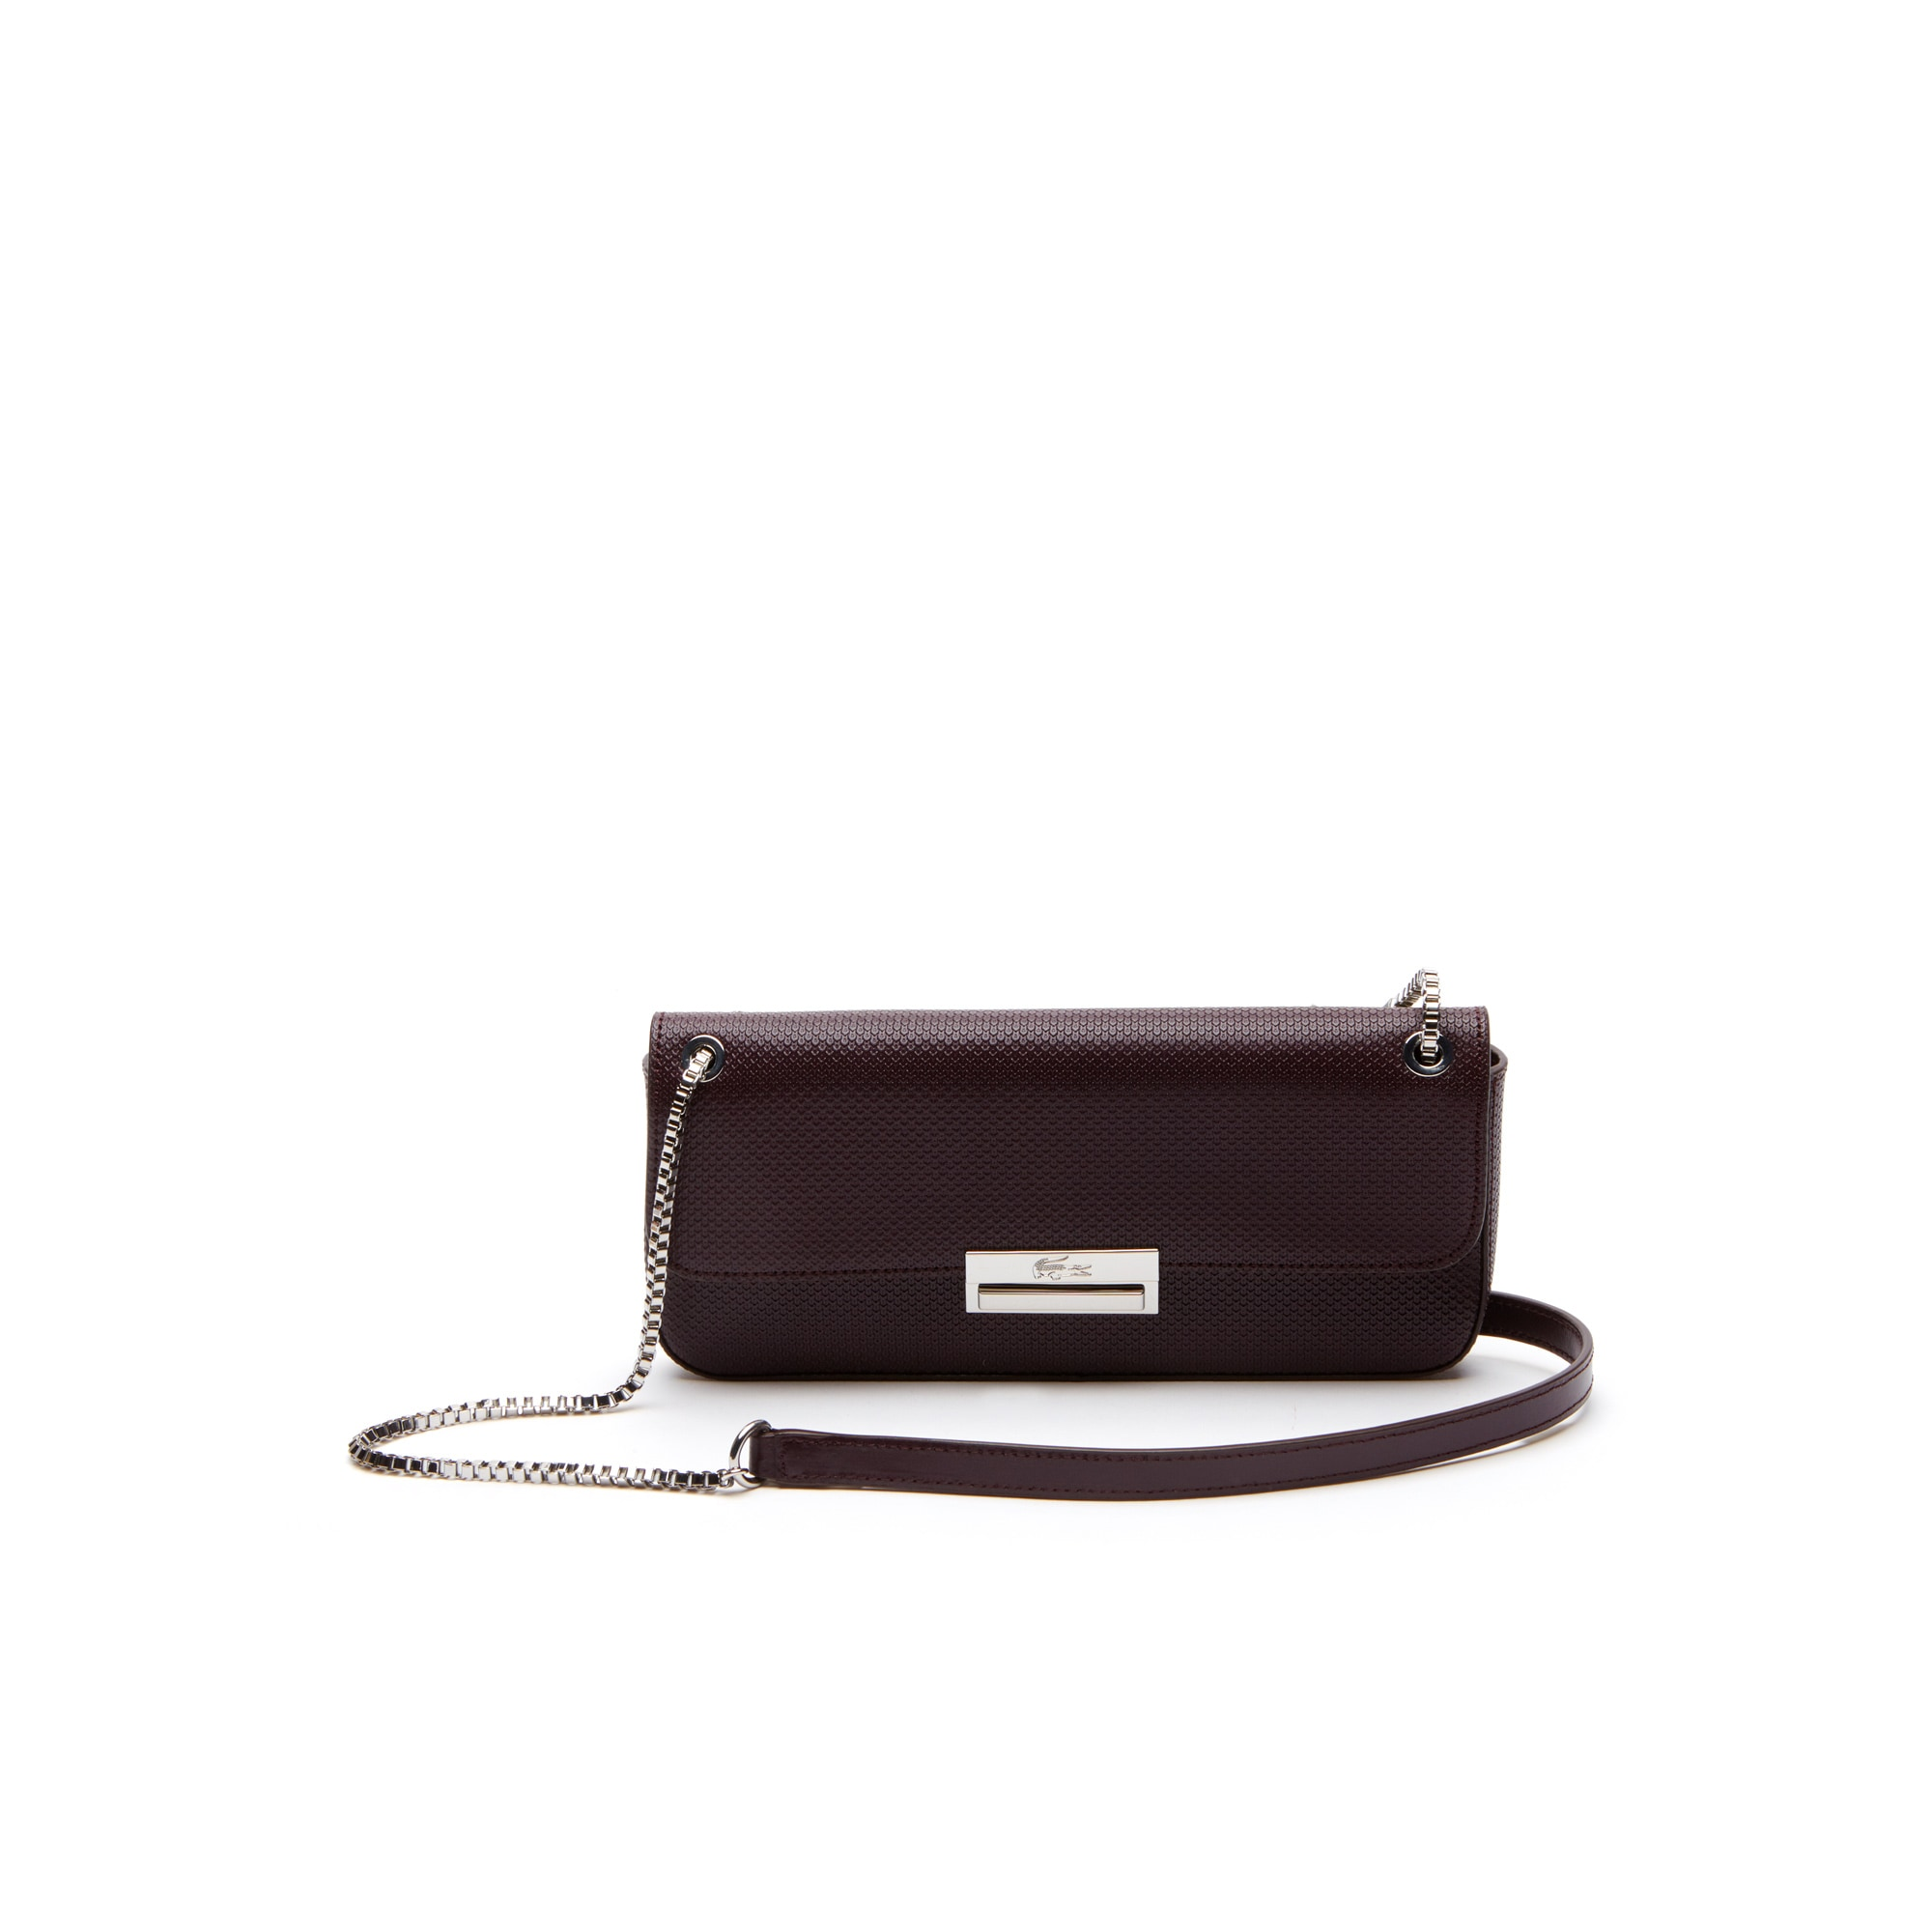 Lacoste WOMEN'S CHANTACO CHRISTMAS PIQUÉ LEATHER FLAP SHOULDER BAG